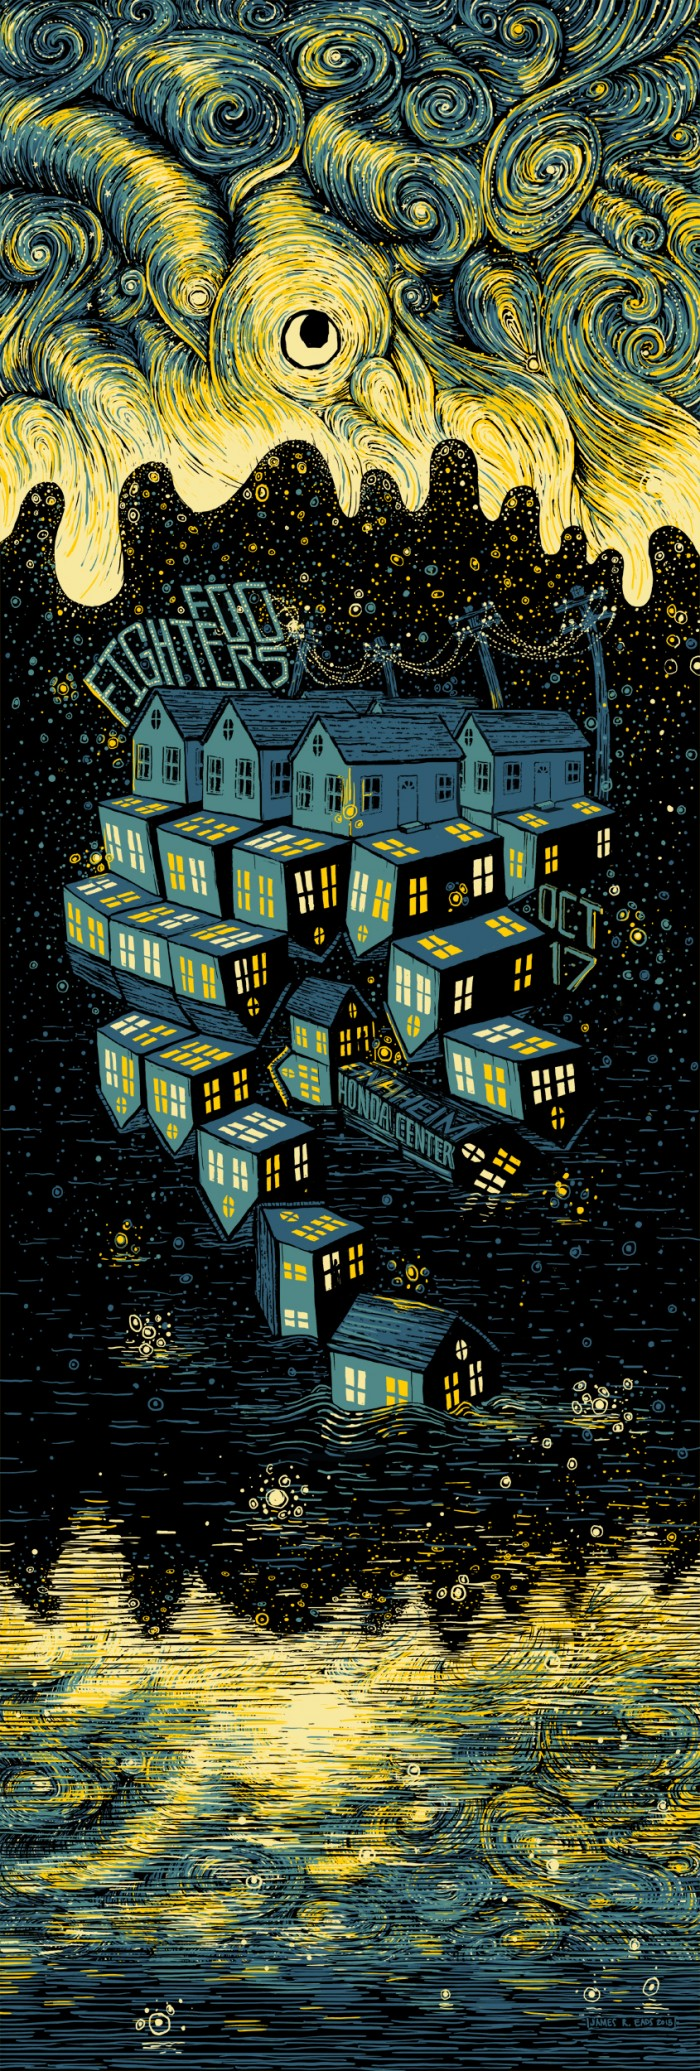 """Foo Fighters - Anaheim, CA 2015"" by James R Eads.  12"" x 36"" 4-color Screenprint.  AP edition of 60 S/N.  $40"